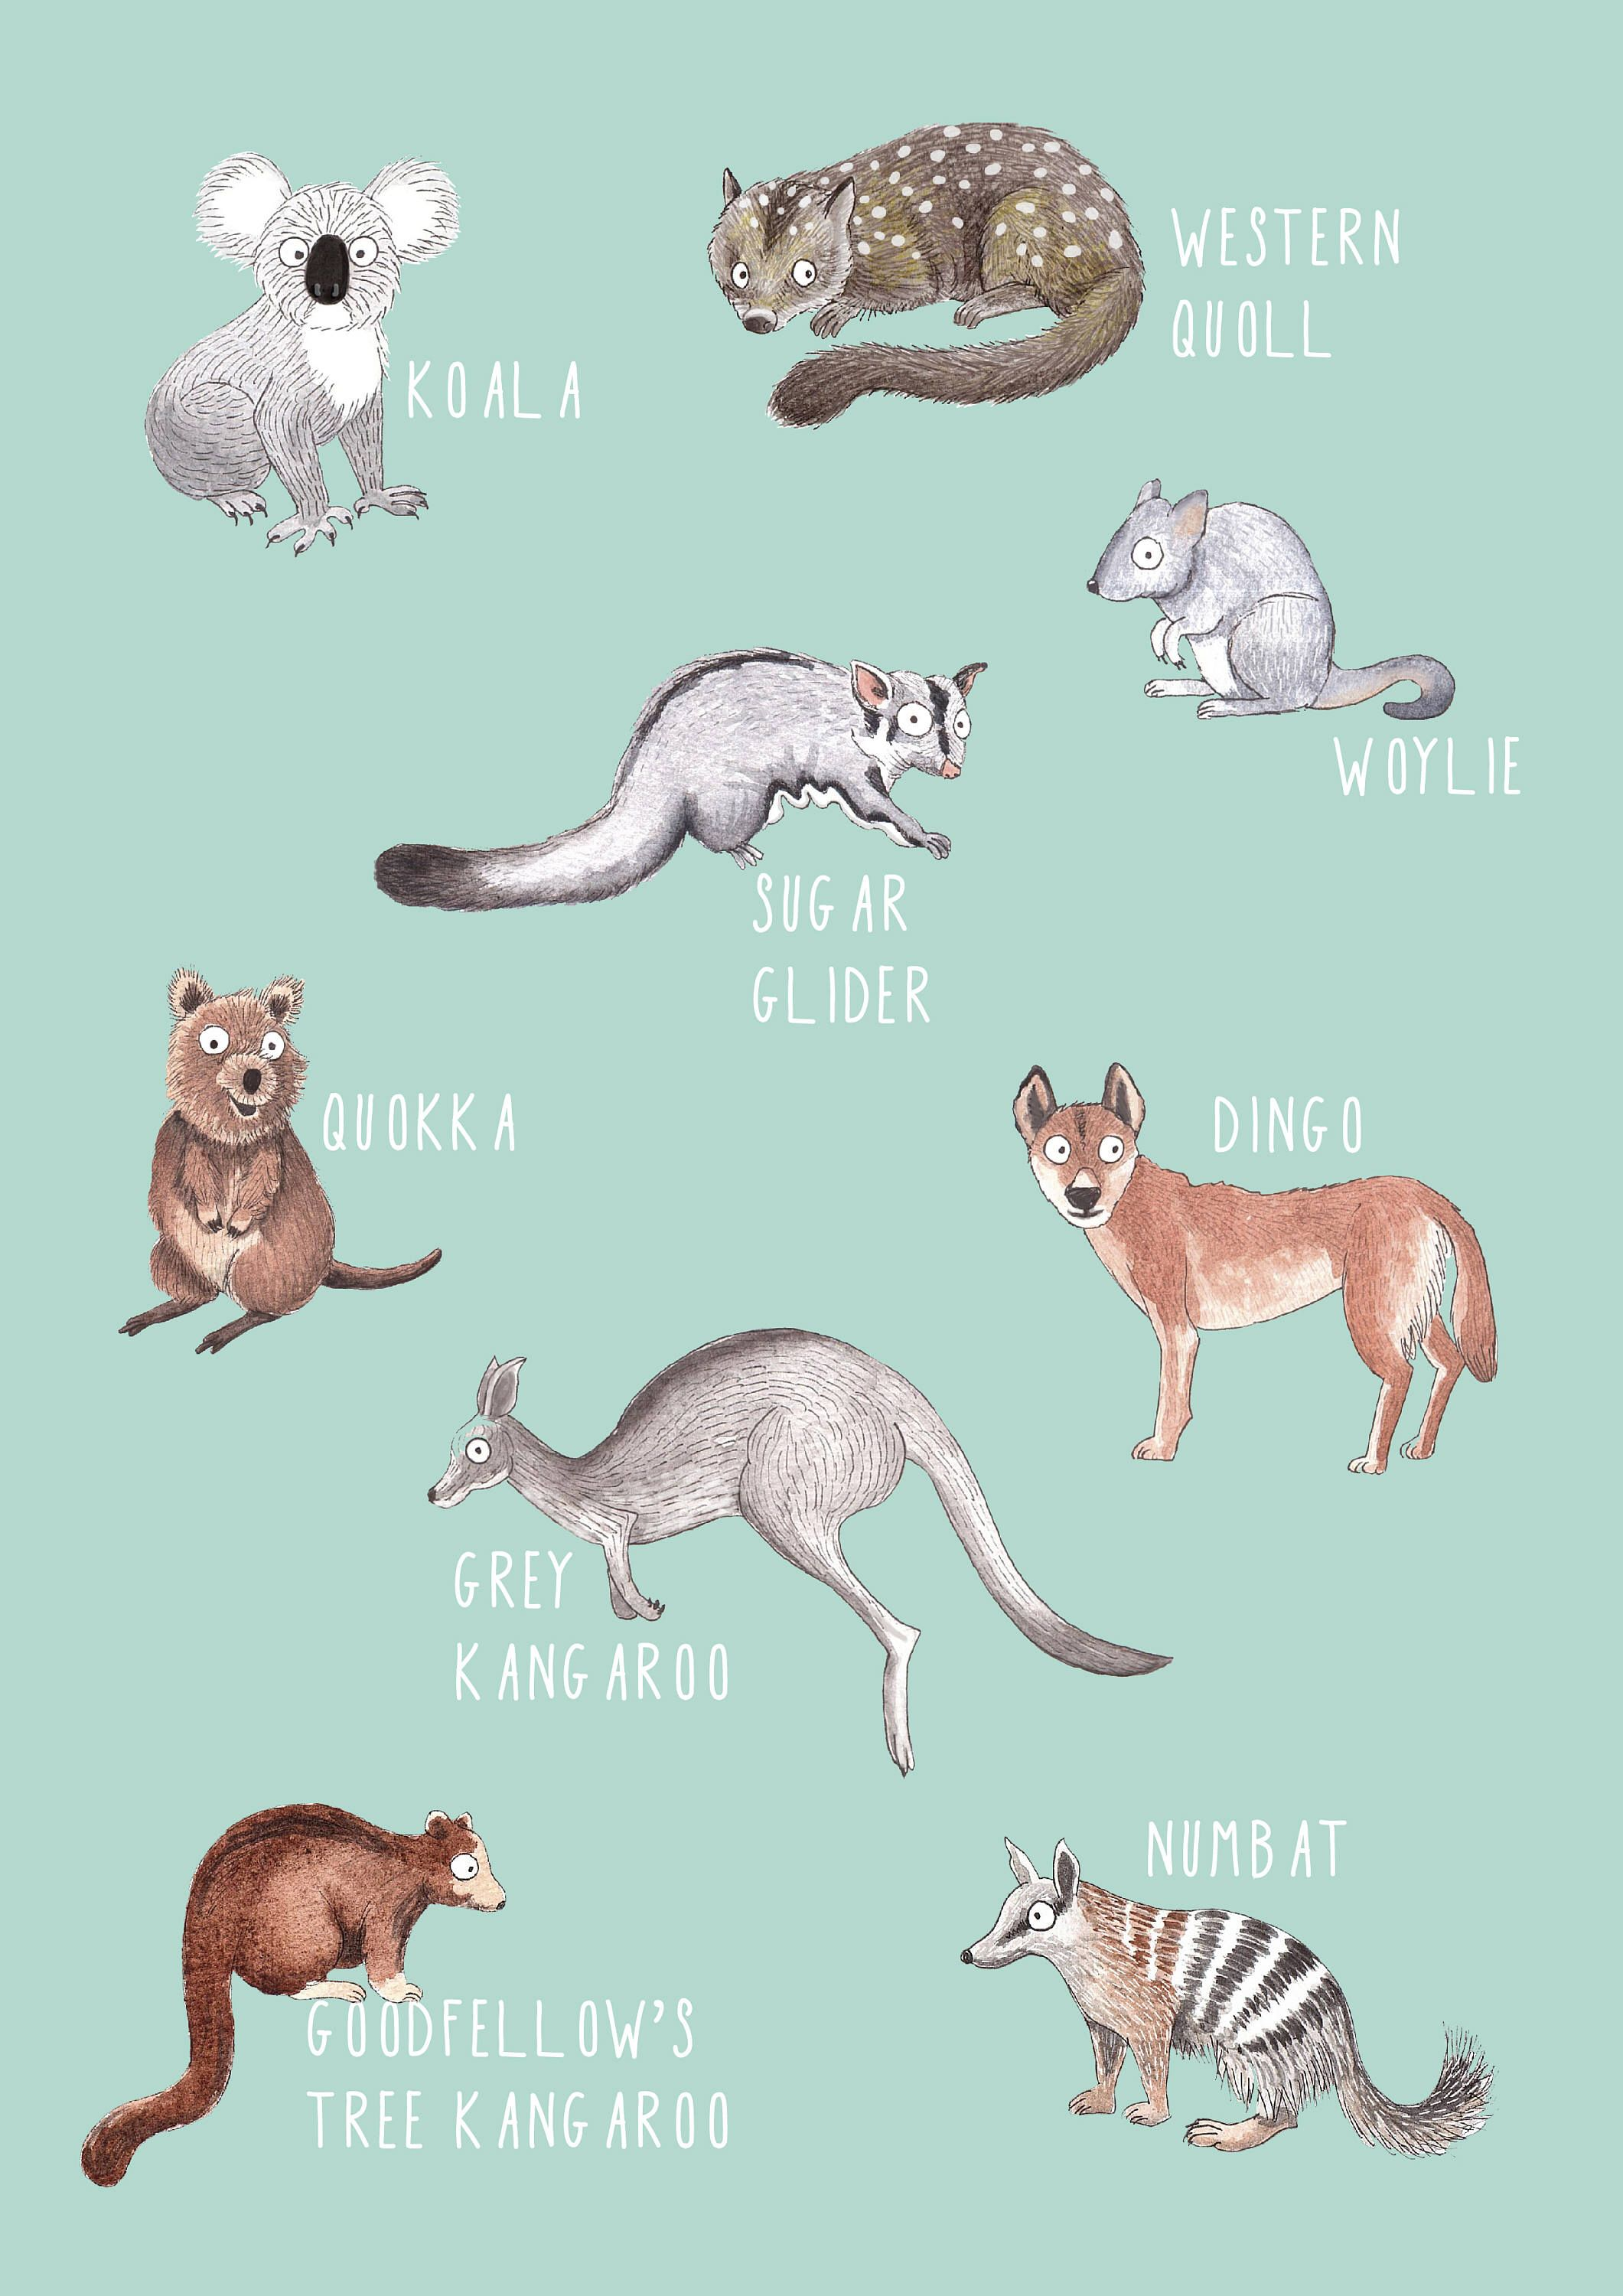 June Sale On Laser Prints Australian Mammals B Laser Or Giclee Print A4 Size In 2020 Cute Australian Animals Australian Mammals Cute Animal Drawings